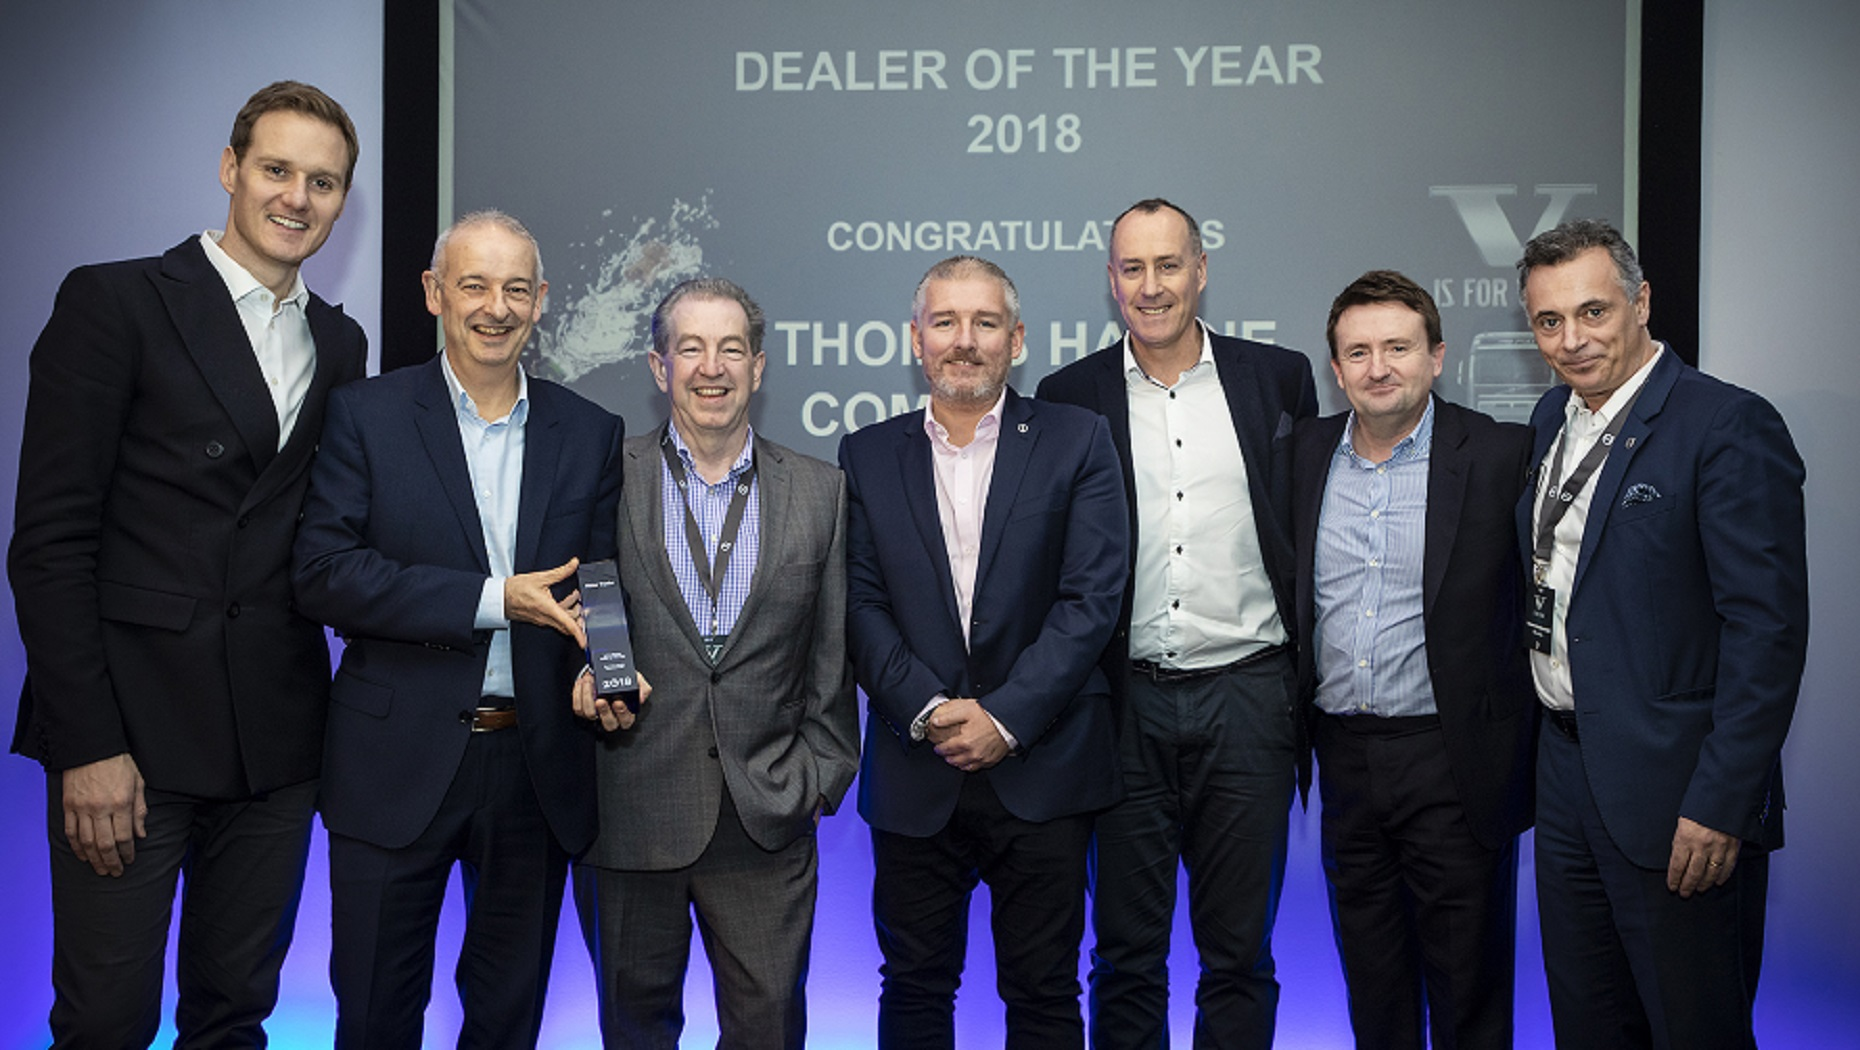 Thomas Hardie Commercials Win Dealer of the Year Award